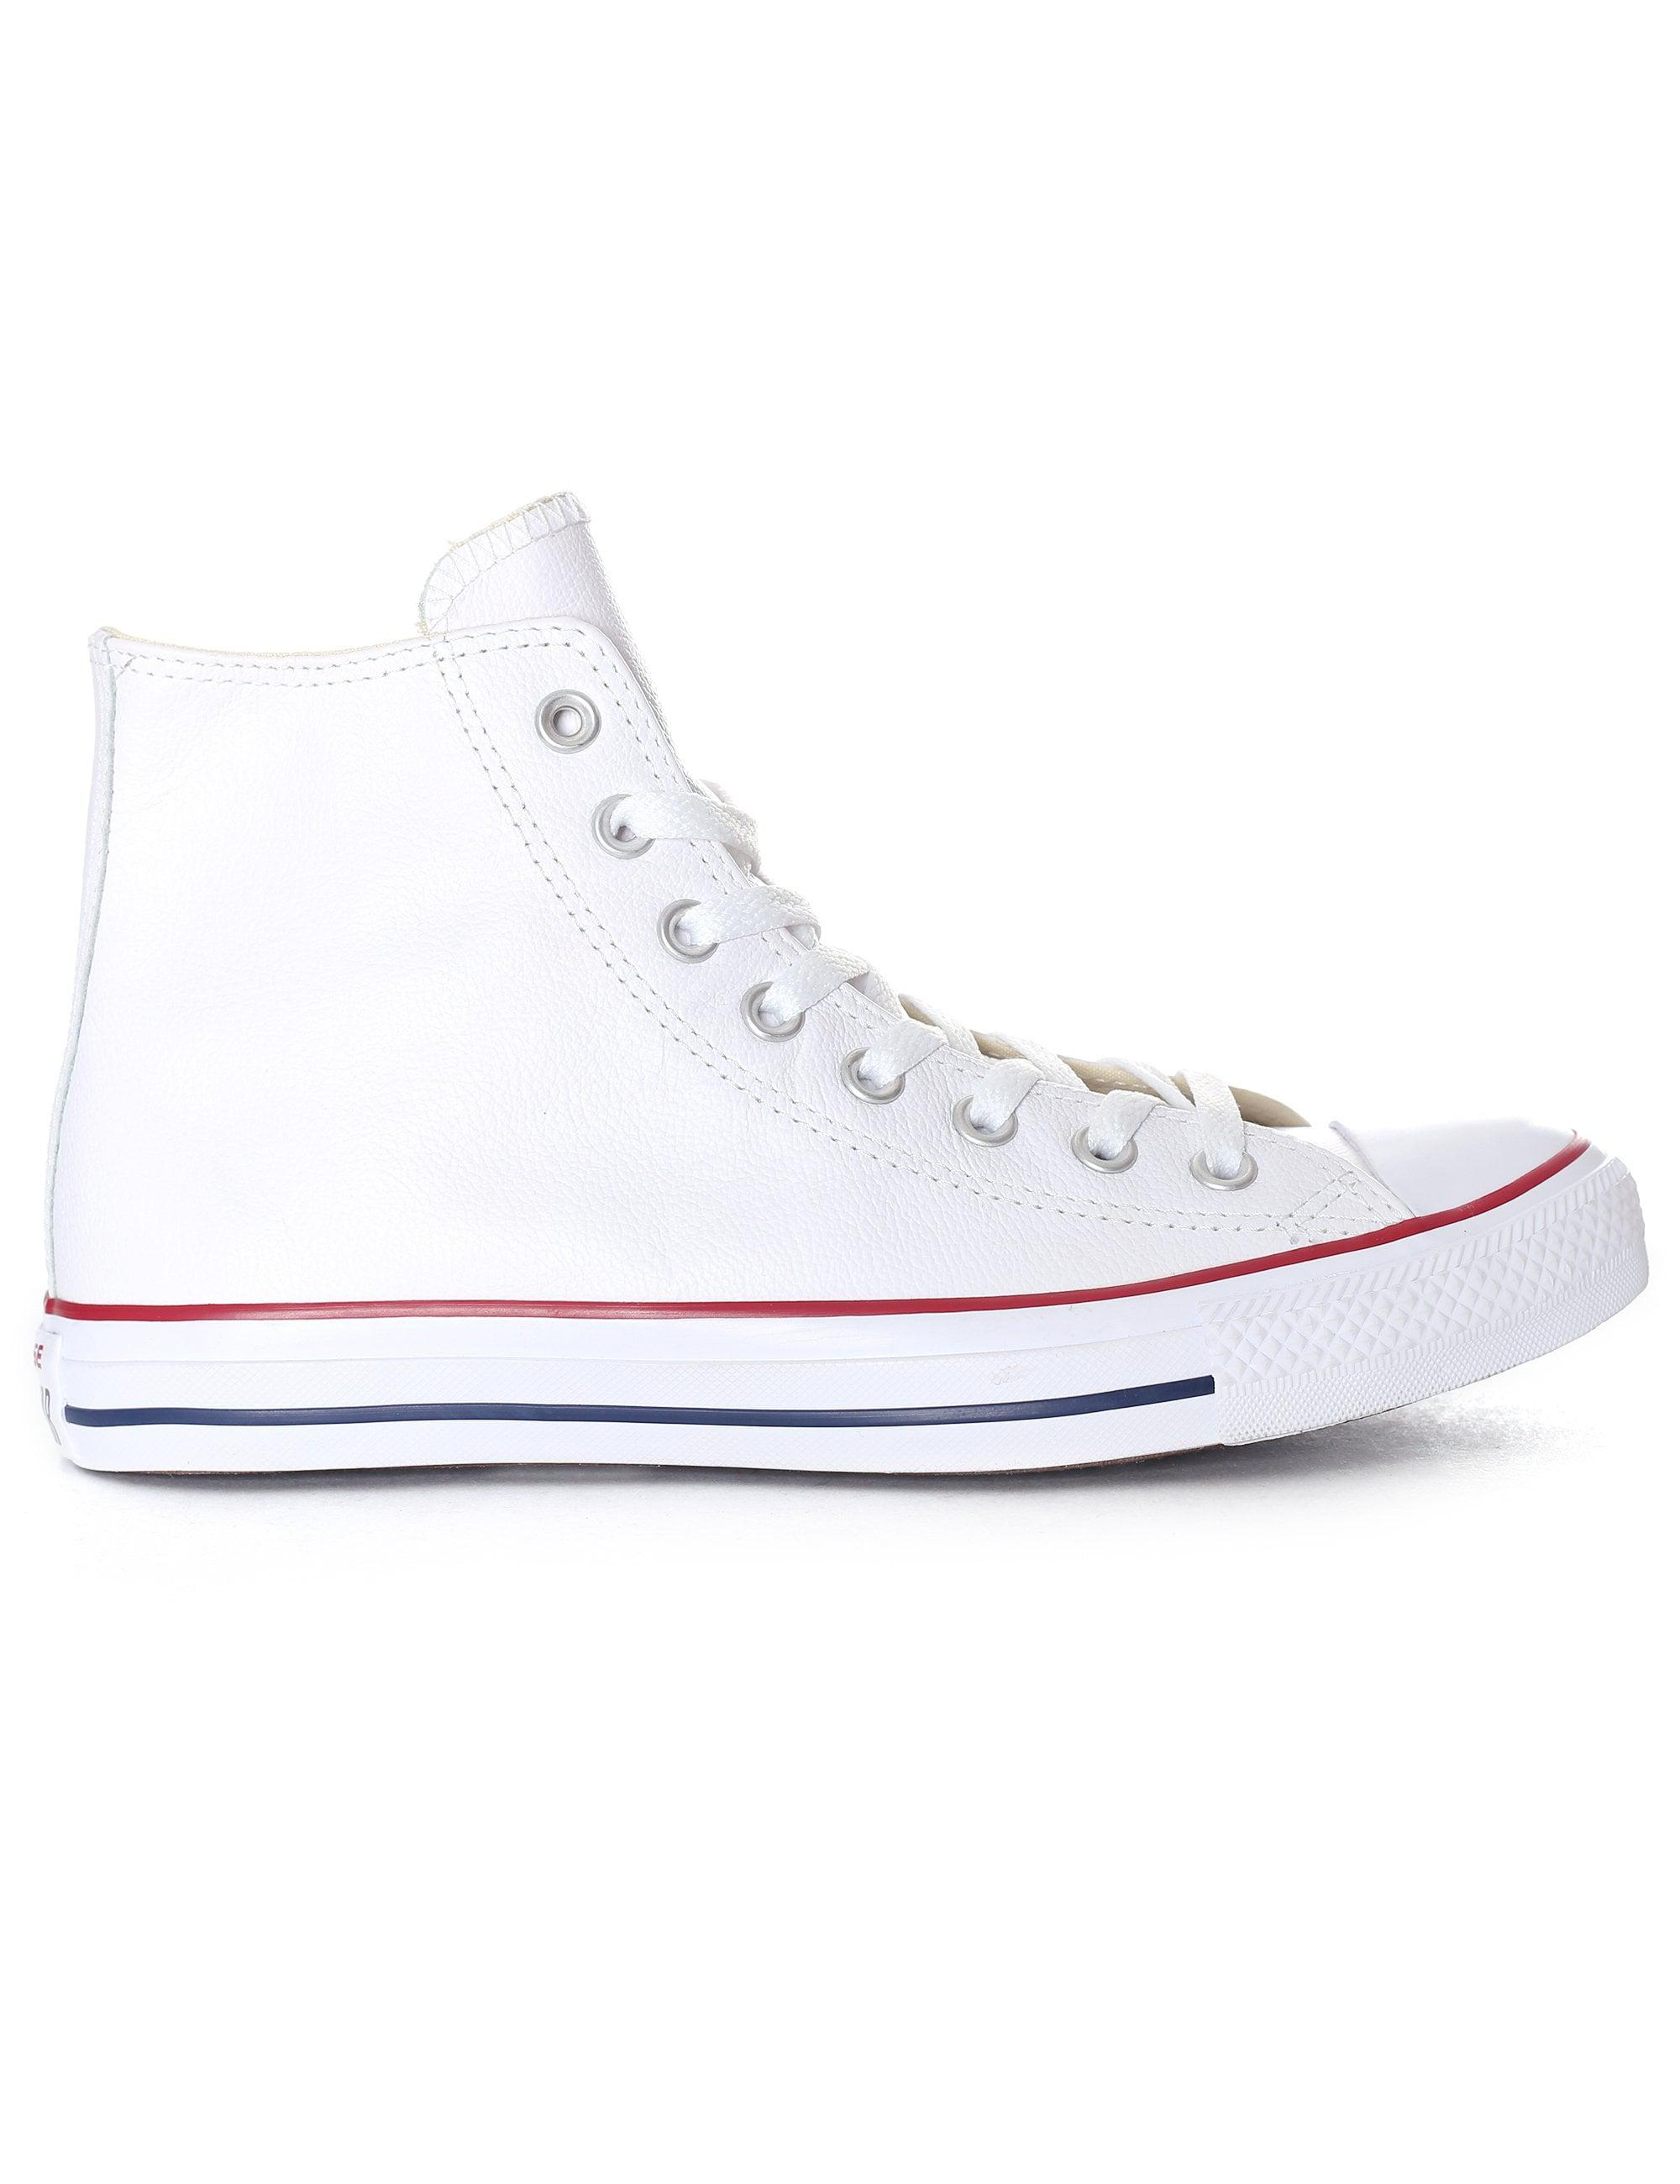 3c48407019e9 Converse - White Chuck Taylor All Star Leather Sneaker for Men - Lyst. View  fullscreen